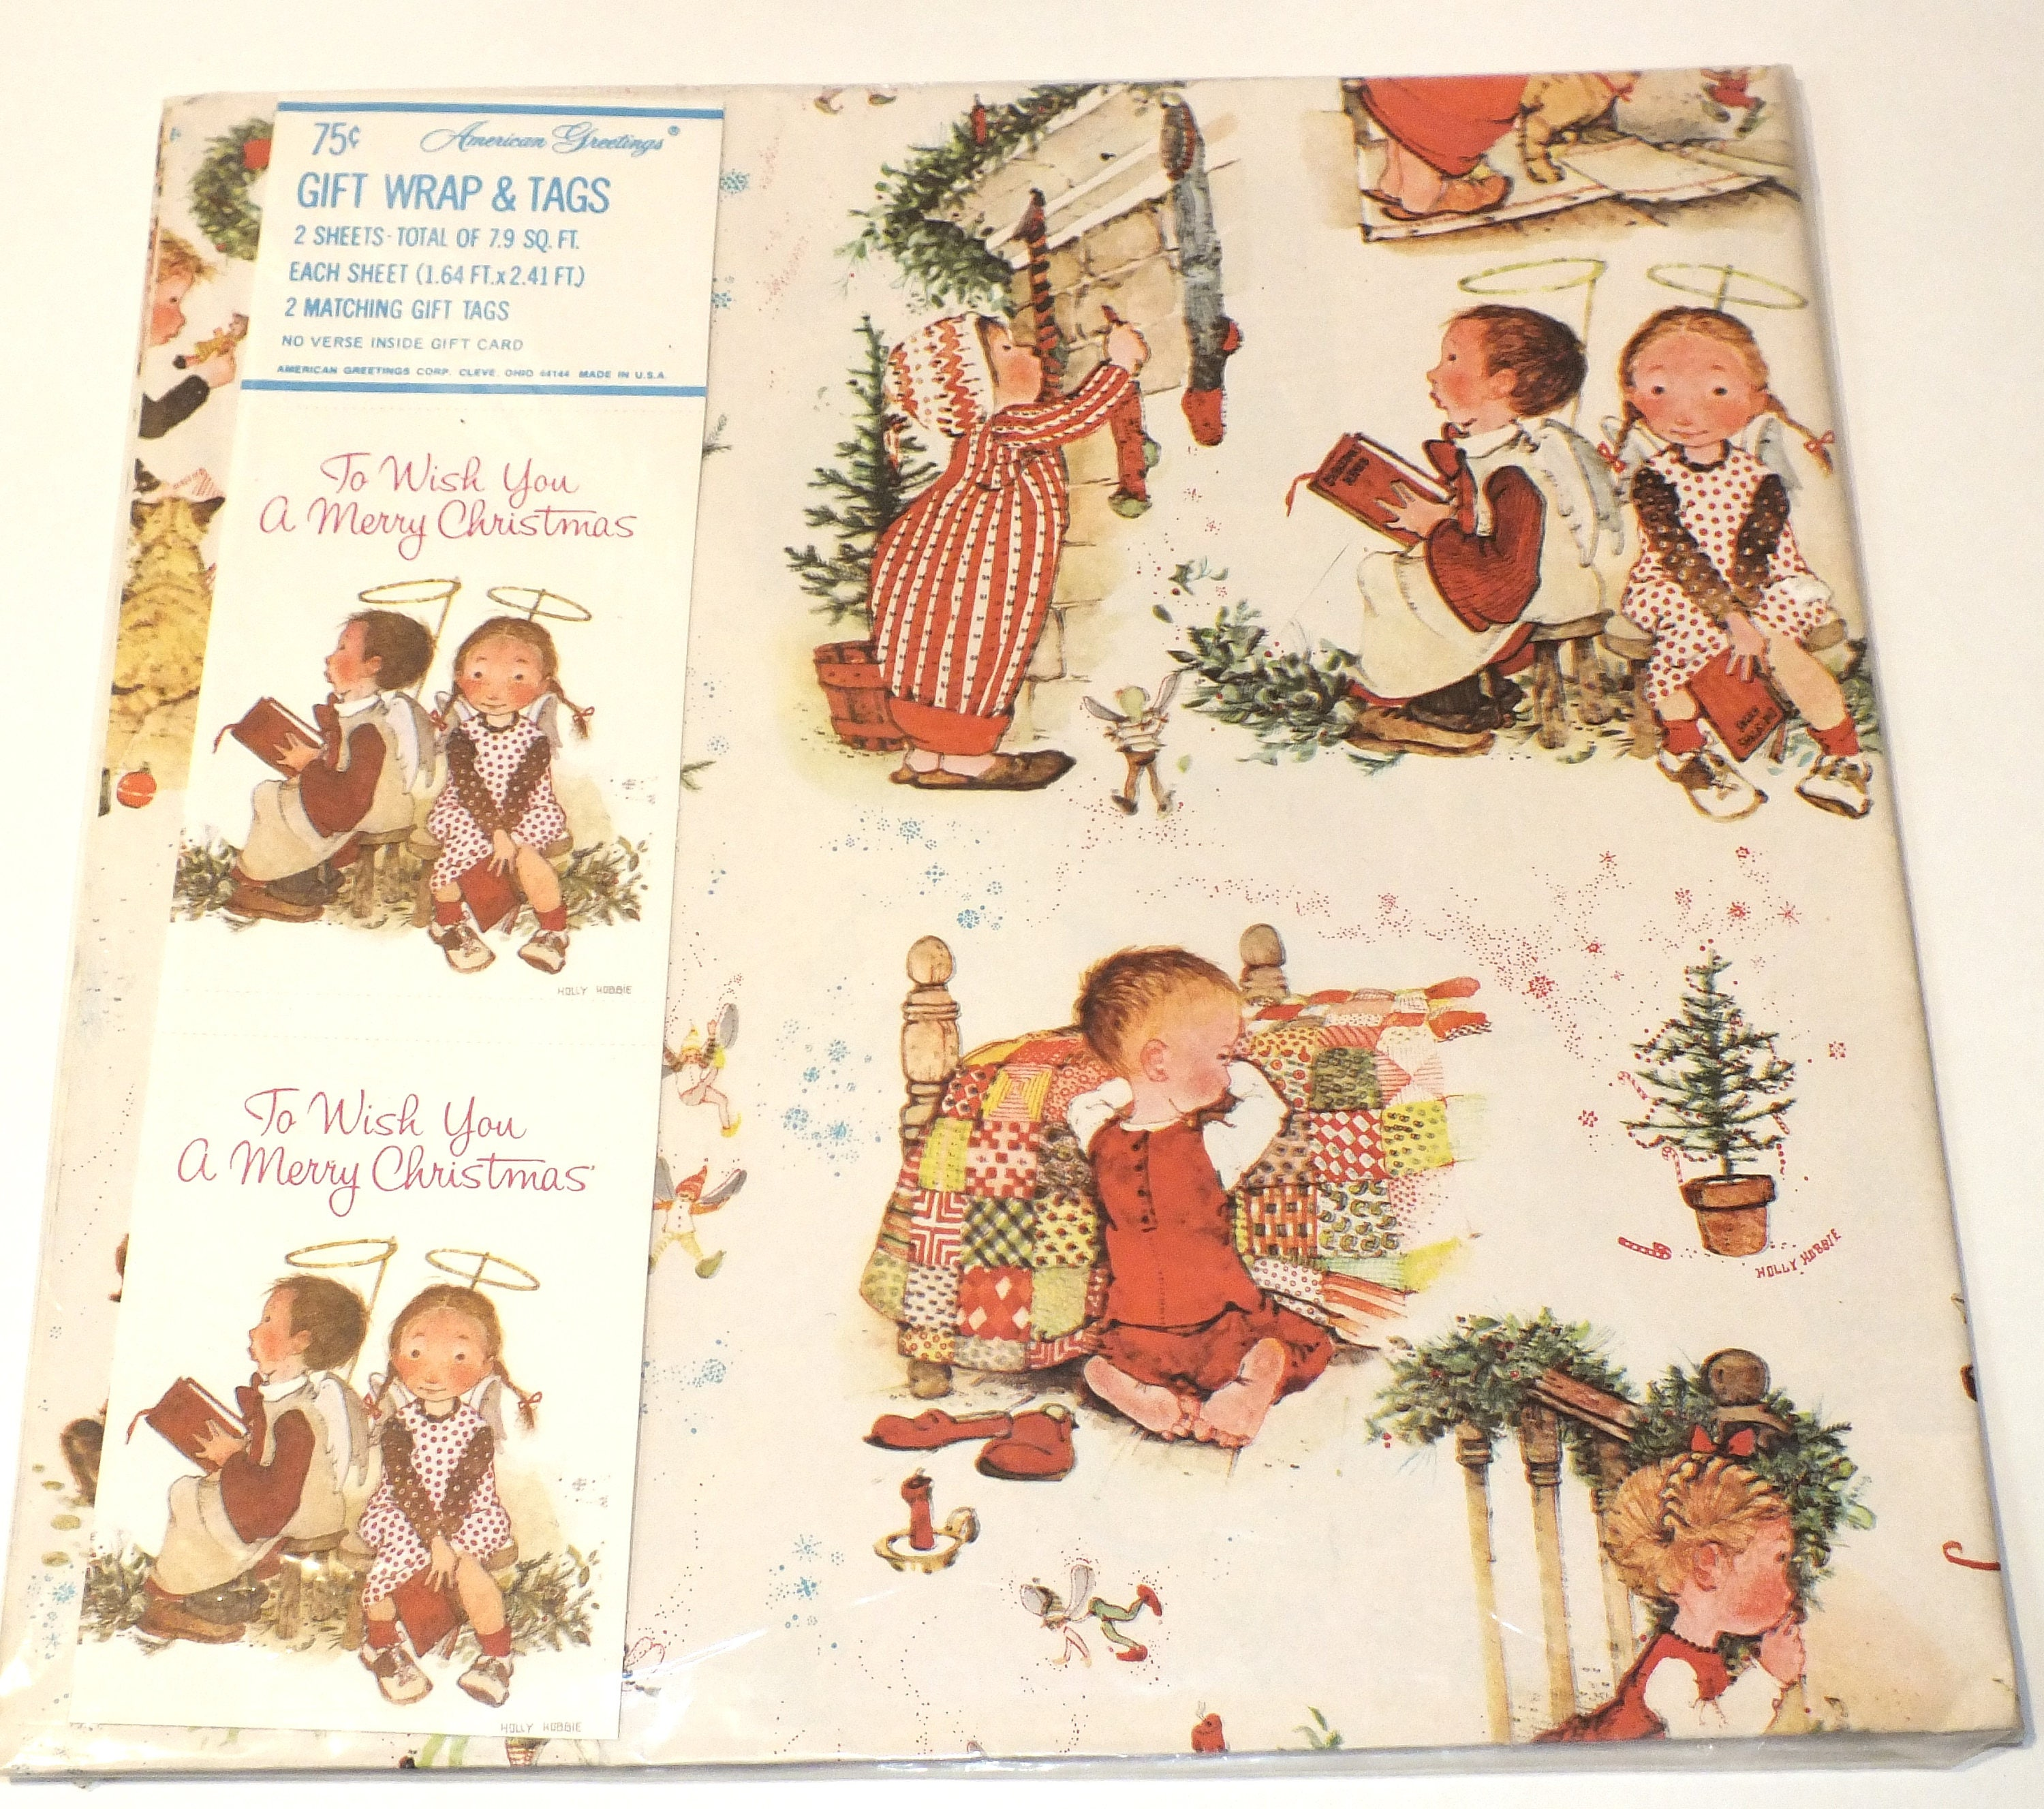 Vintage American Greetings Gift Wrap Christmas Holiday Holly Hobbie